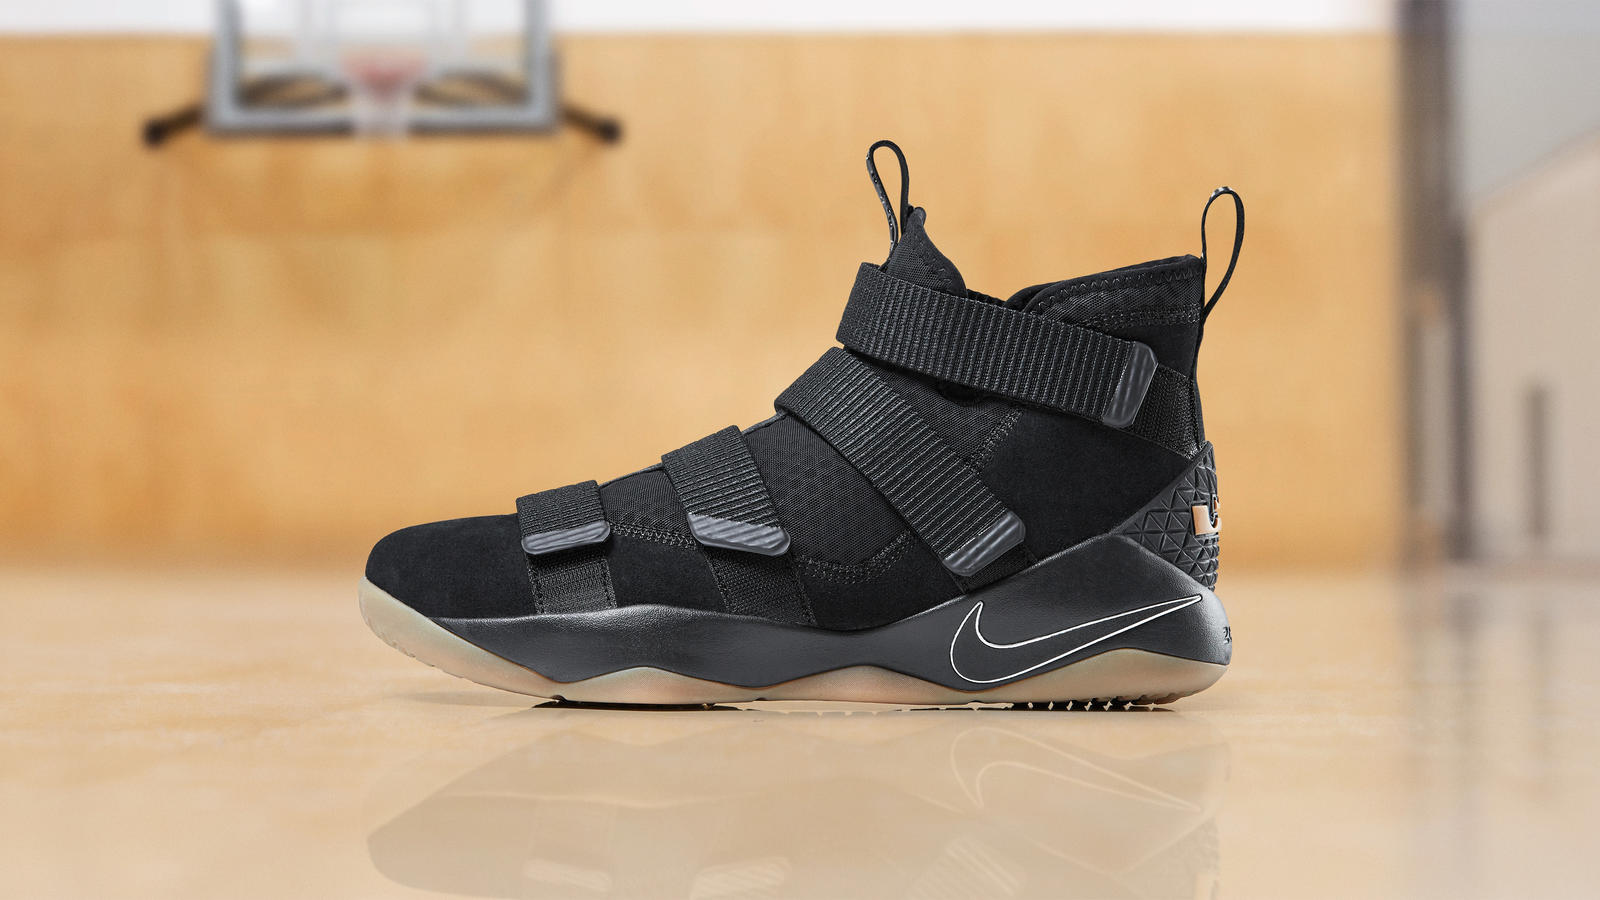 official photos 3eff4 31e15 Nike Zoom LeBron Soldier 11 - Nike News